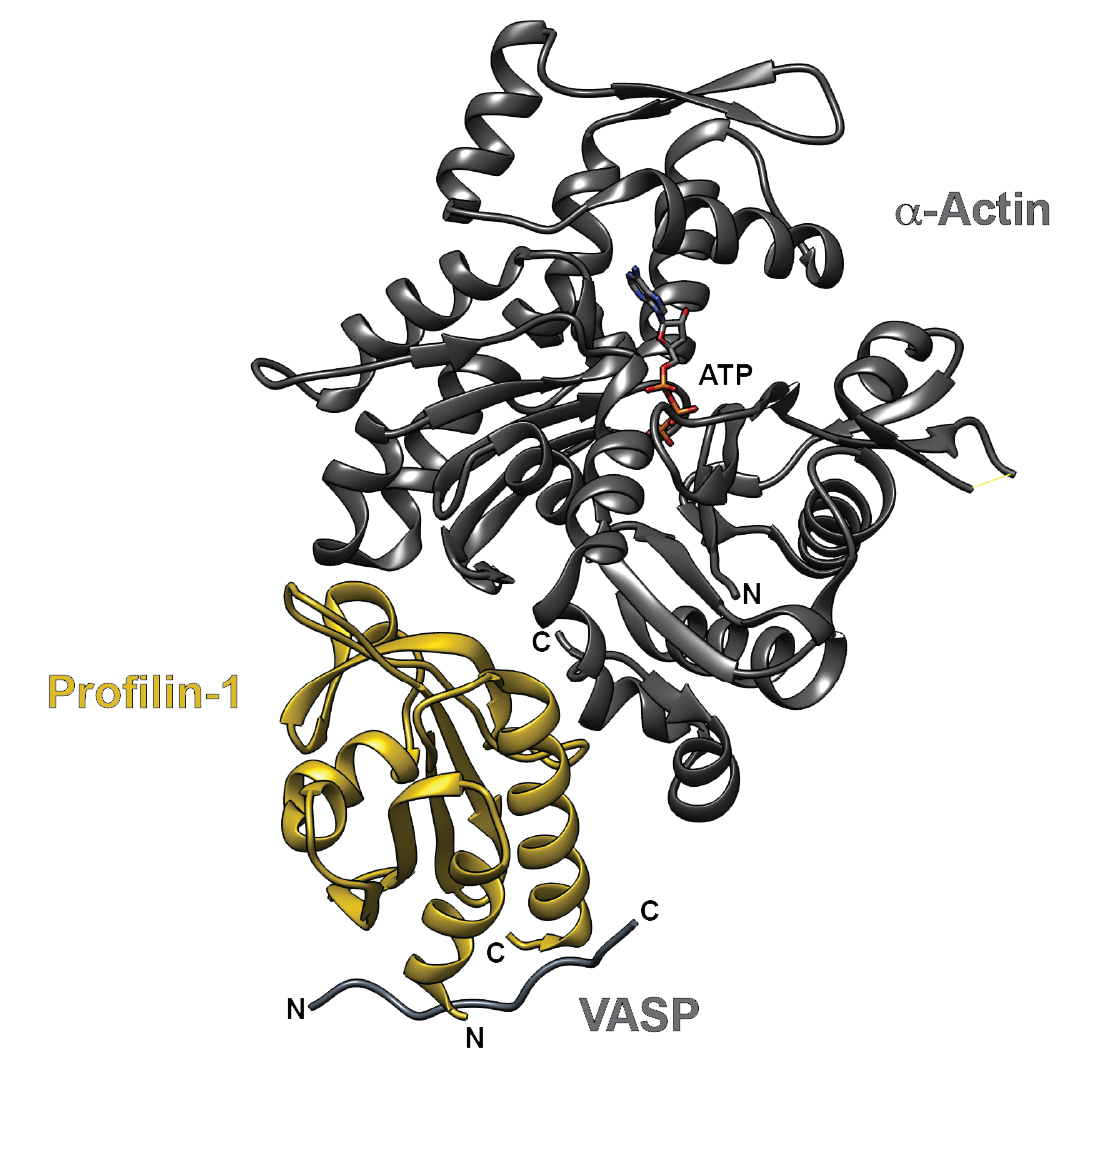 Figure 1. The crystal structure of human profilin-1 (yellow) bound on opposite sides to α-actin (grey) and the peptide from the poly-proline site of human VASP. Image was created with UCSF Chimera30 (PDB 2PAV).